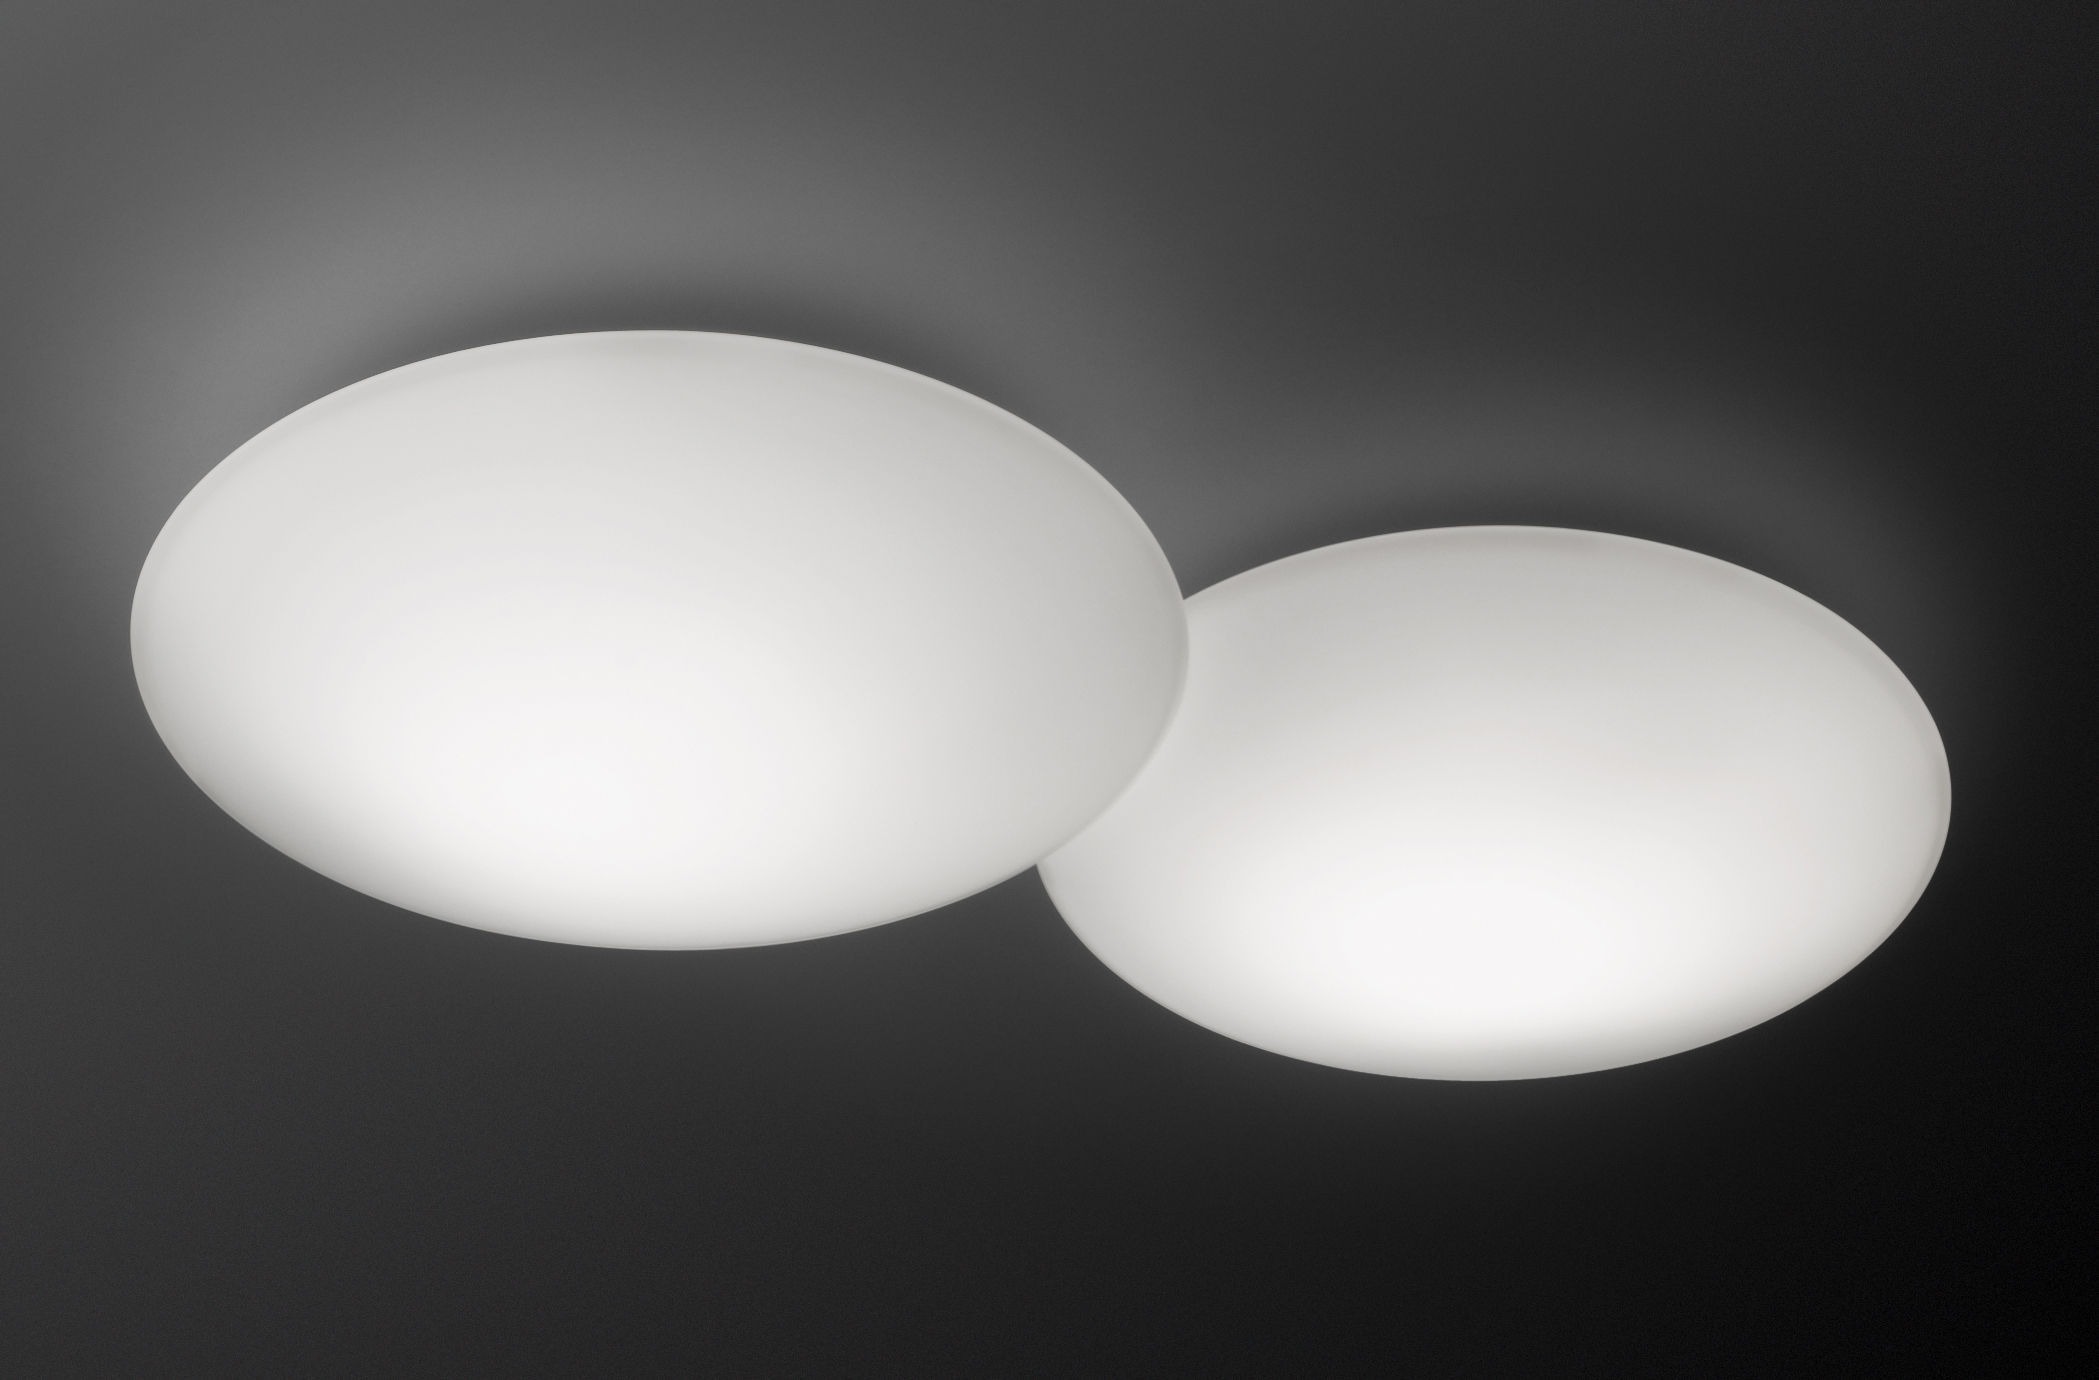 Lighting - Wall Lights - Puck Double LED Wall light - Ceiling lamp by Vibia - White - Blown glass